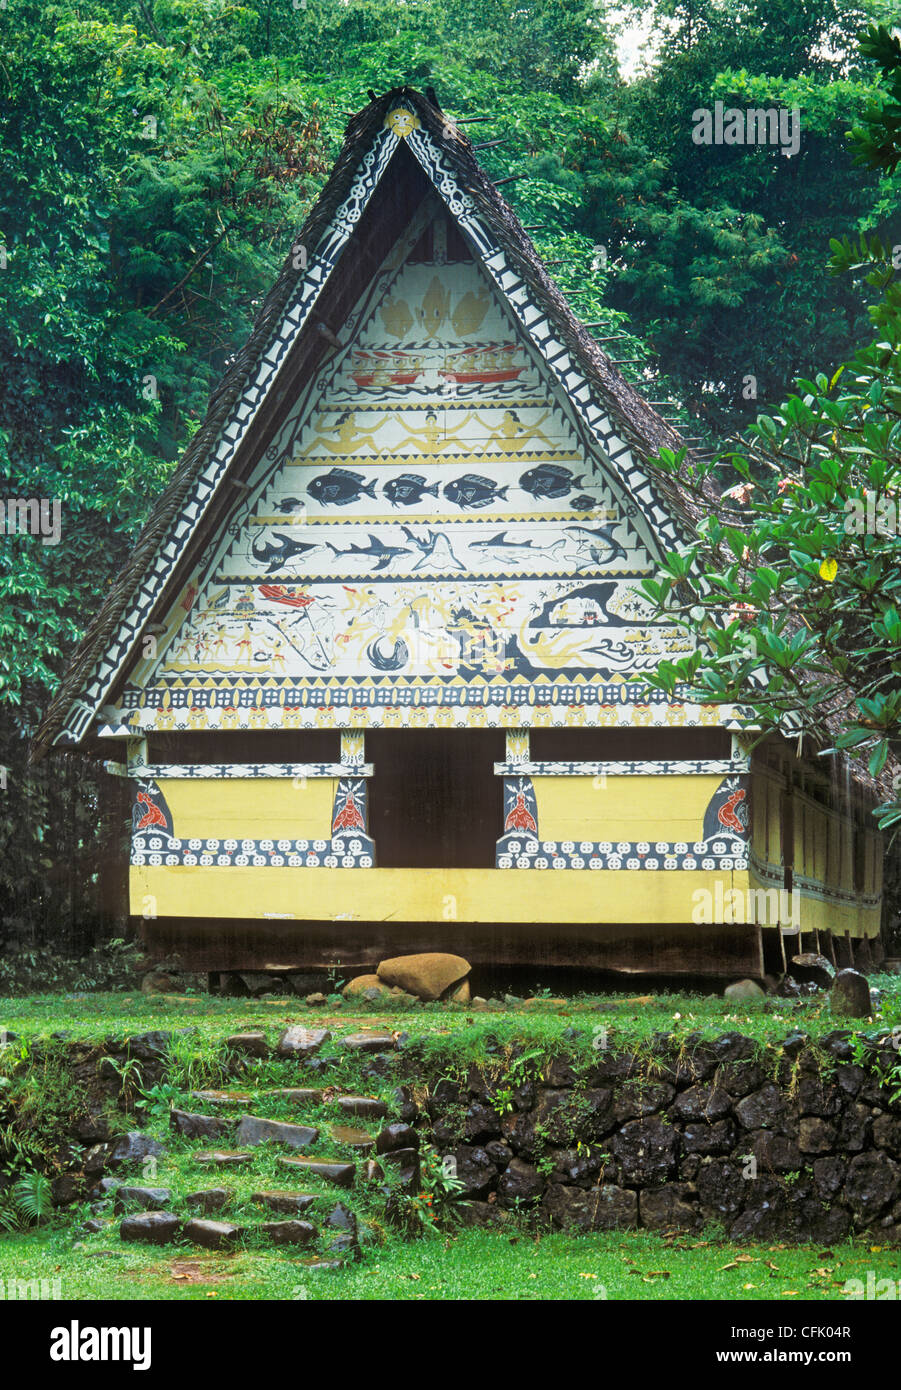 Palau, Micronesia: a Bai - traditional Palauan communal meeting center with painted legends over entry. - Stock Image